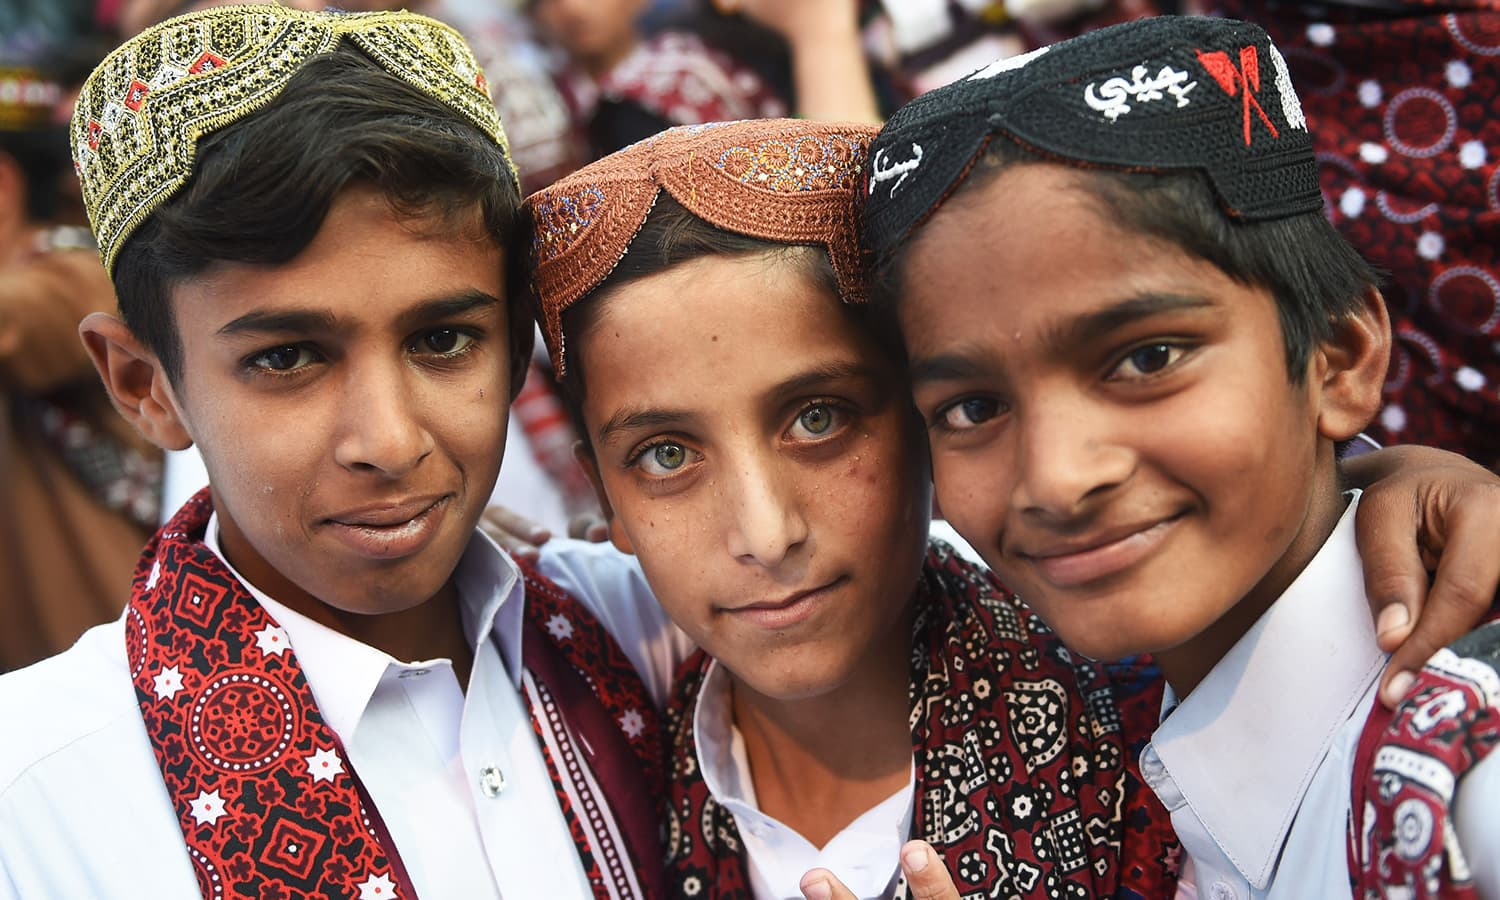 Sindhi children pose as they attend a Sindh Cultural festival in Karachi.— AFP